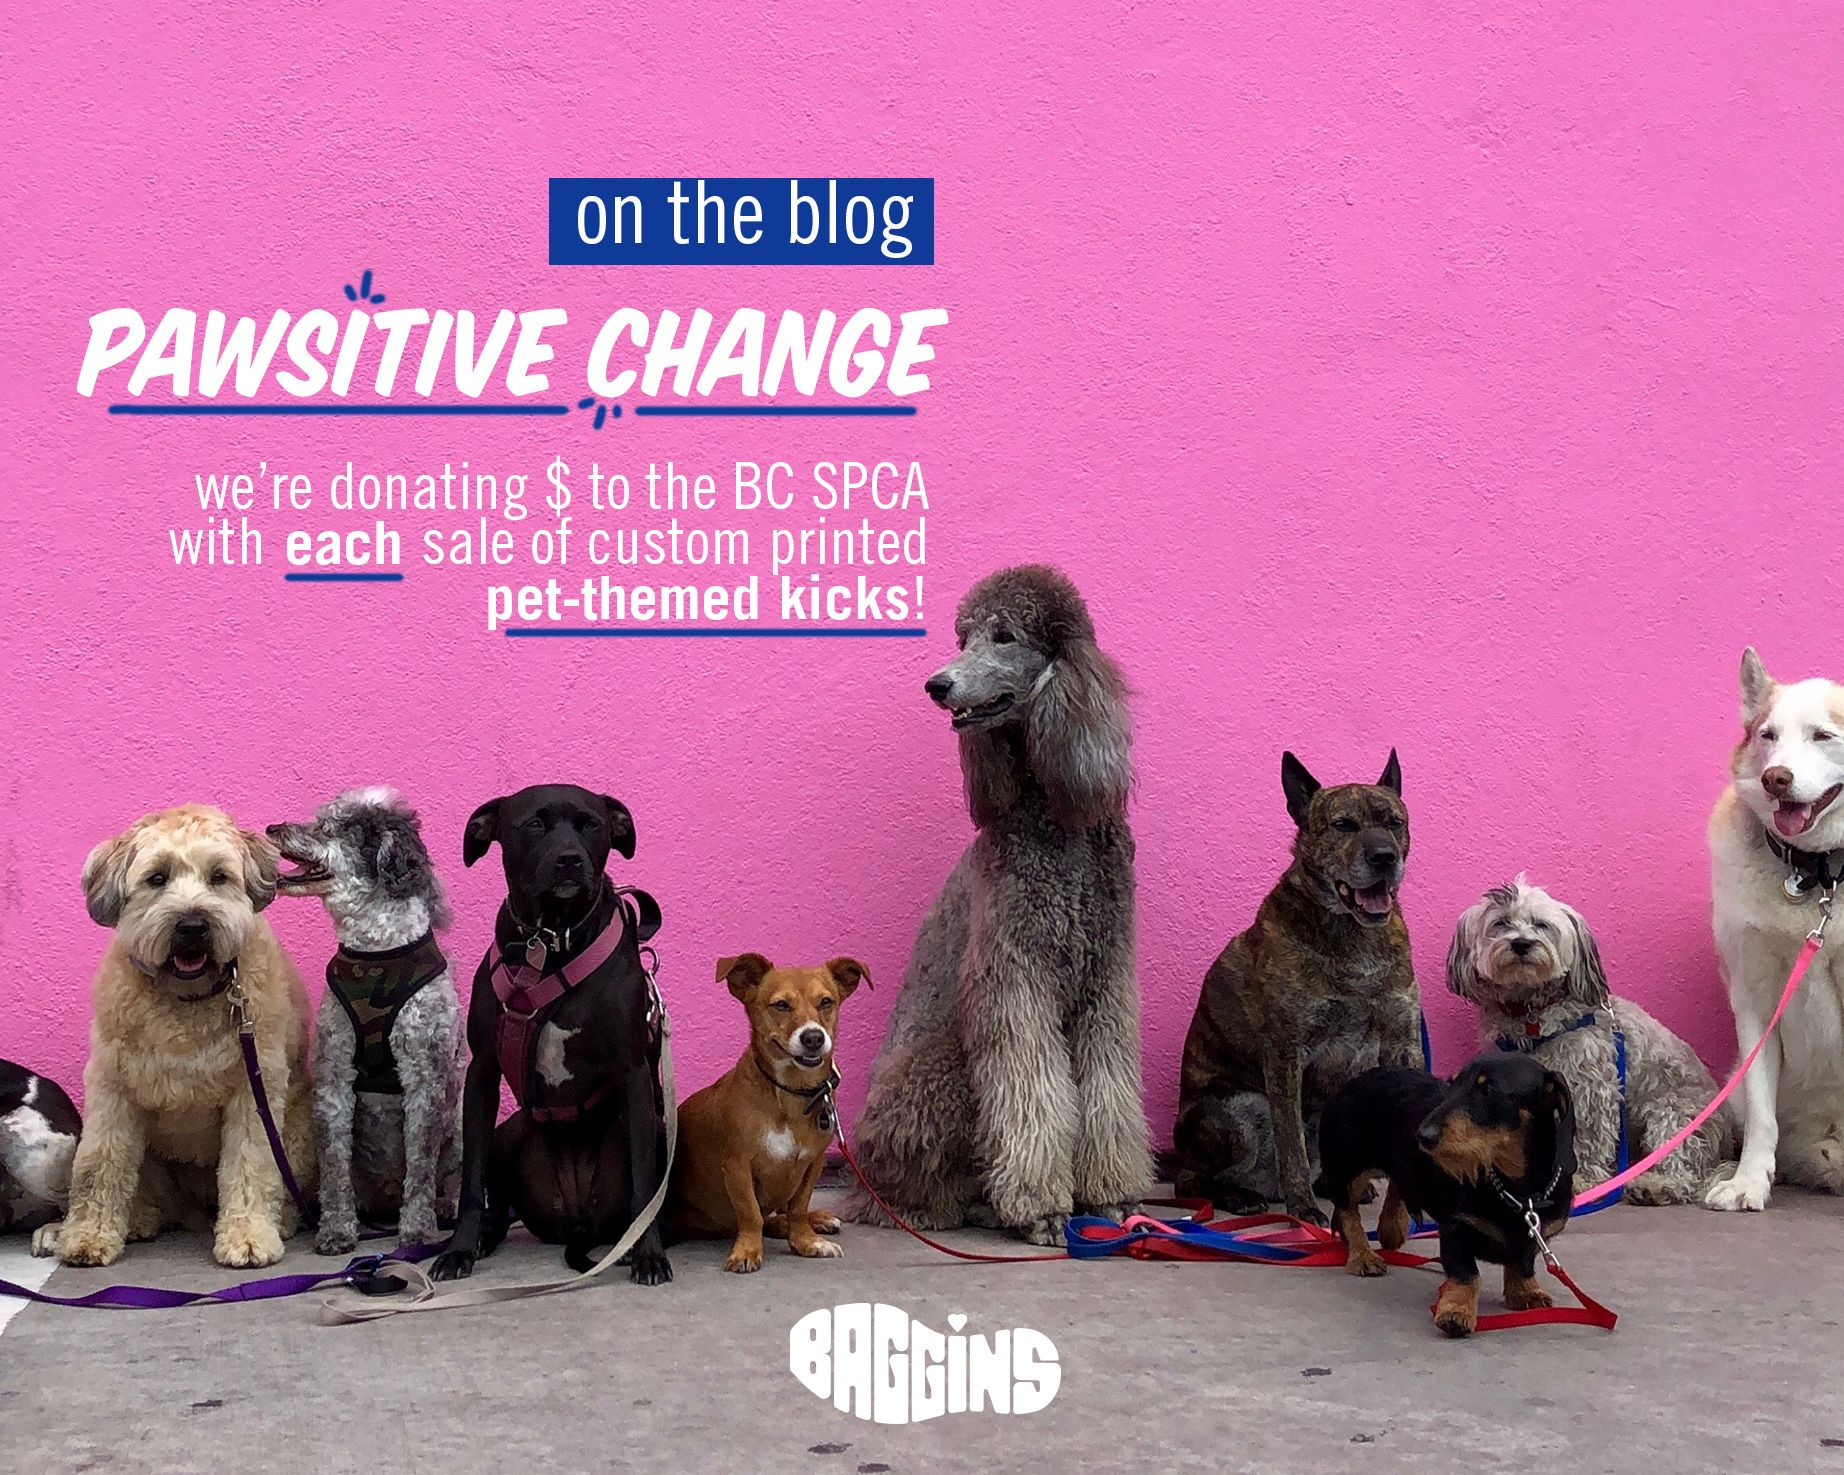 Pawsitive Change Spca Silly Dogs Dog Breeds Big Dogs